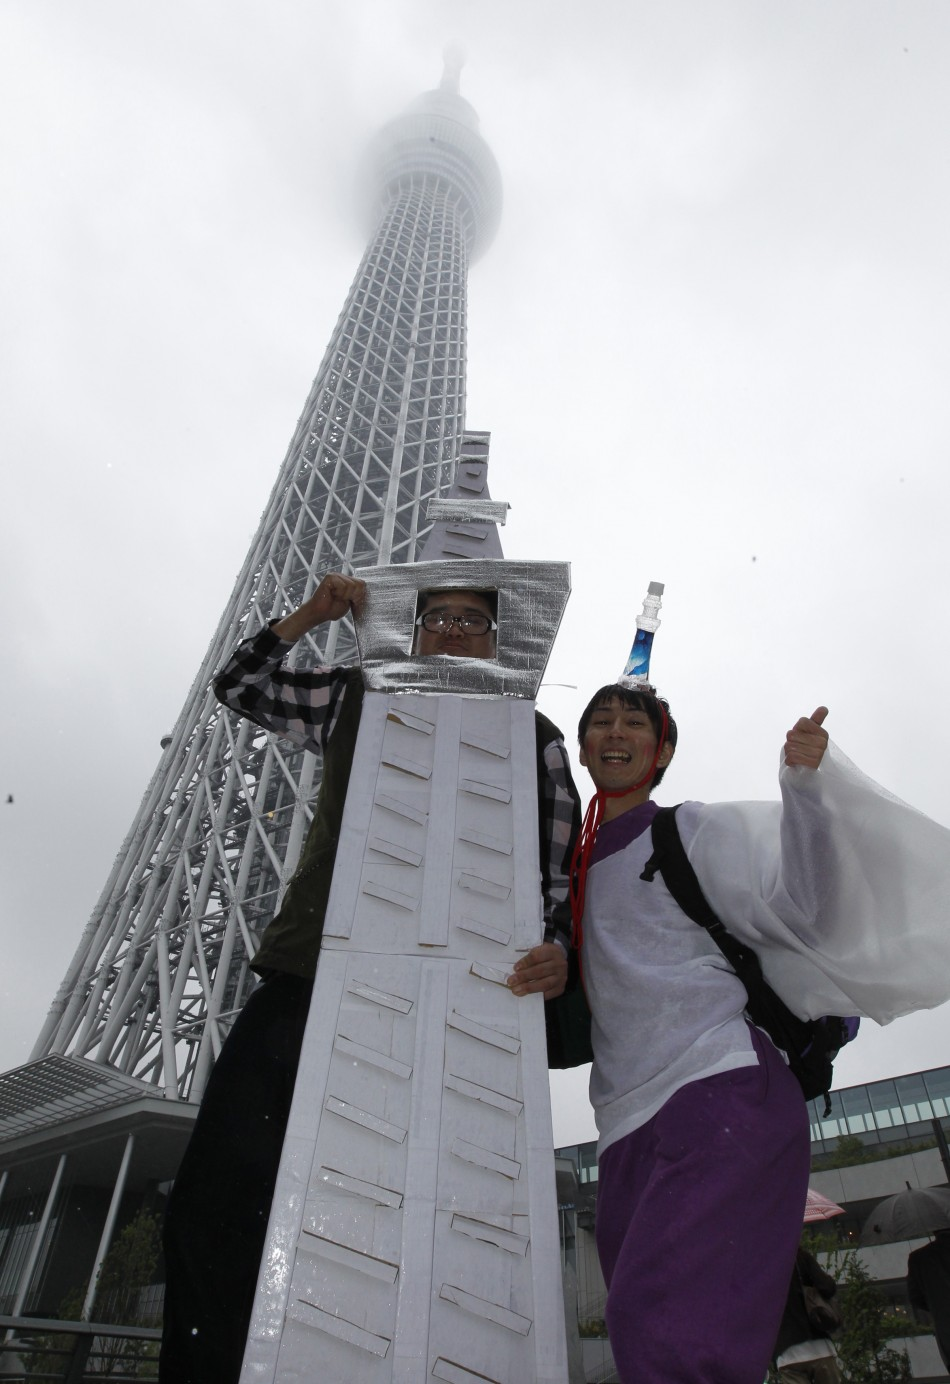 Tokyo Skytree: World's Tallest Tower and Japan's New ...